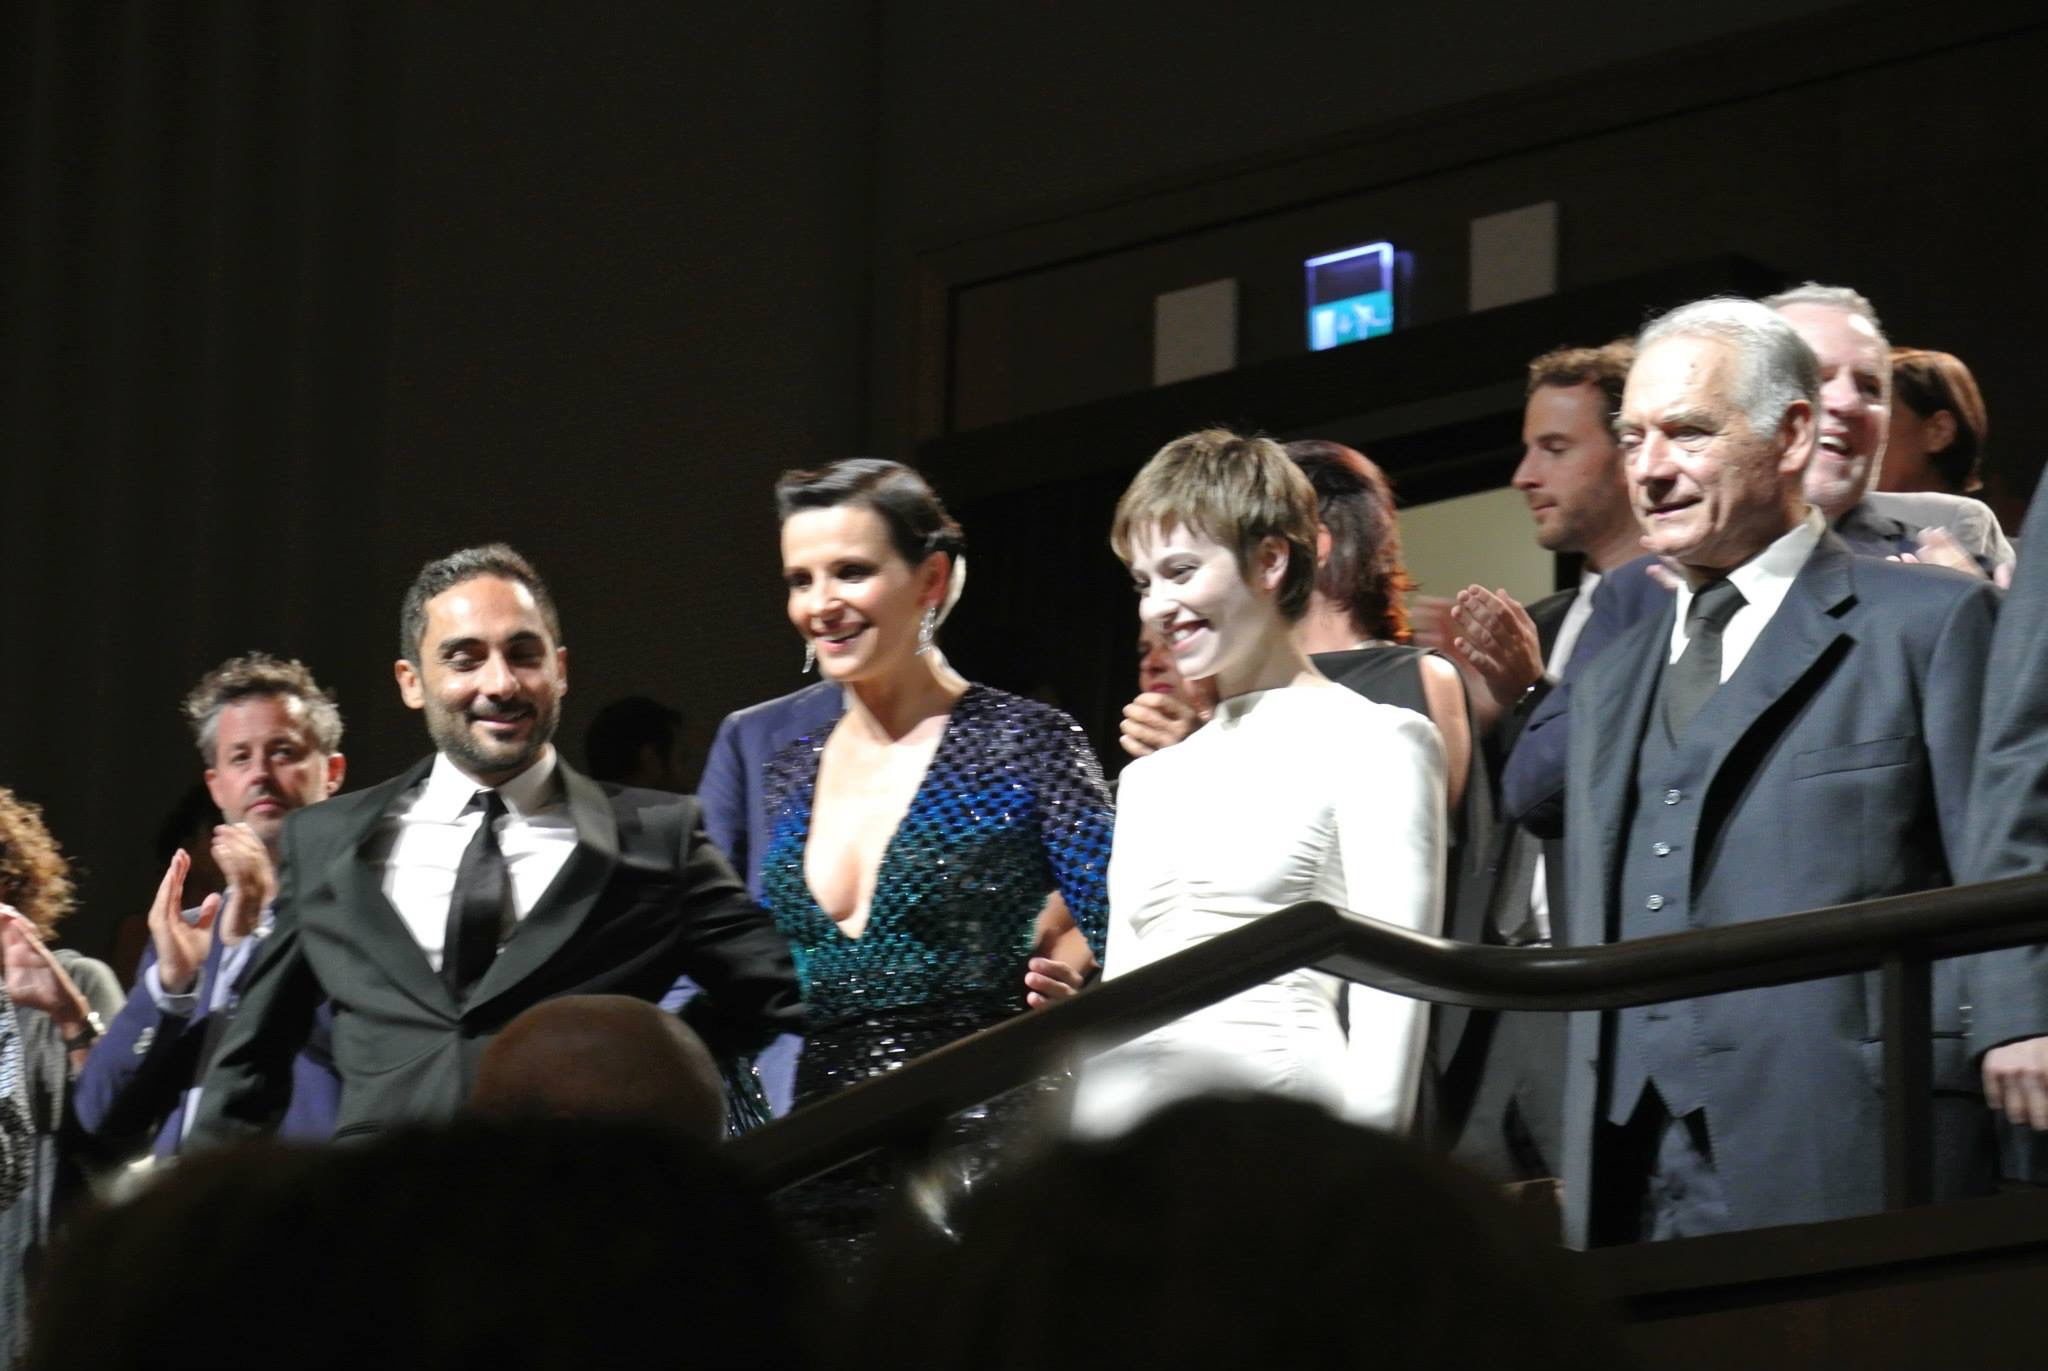 Cast of L'Attesa with Pietro Messina at Venice